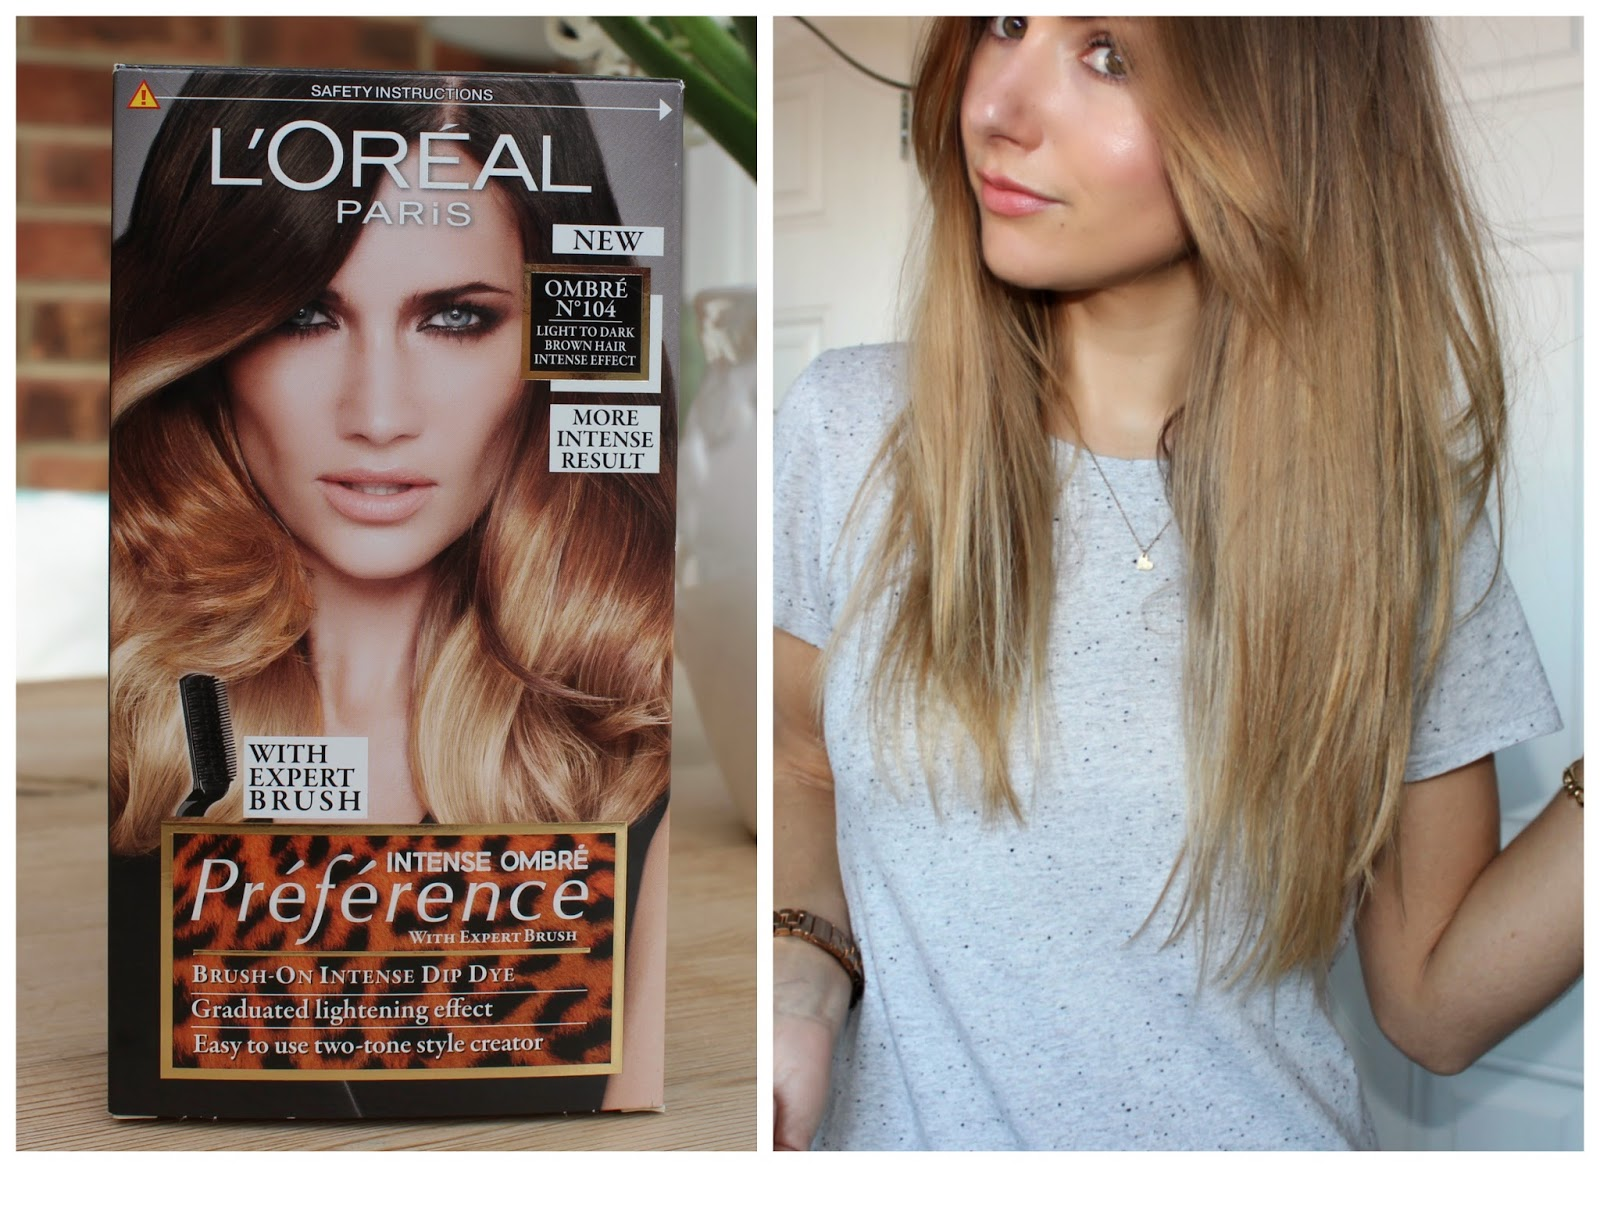 Beauty Le Chic The Perfect Diy Dip Dye With Loreal Intense